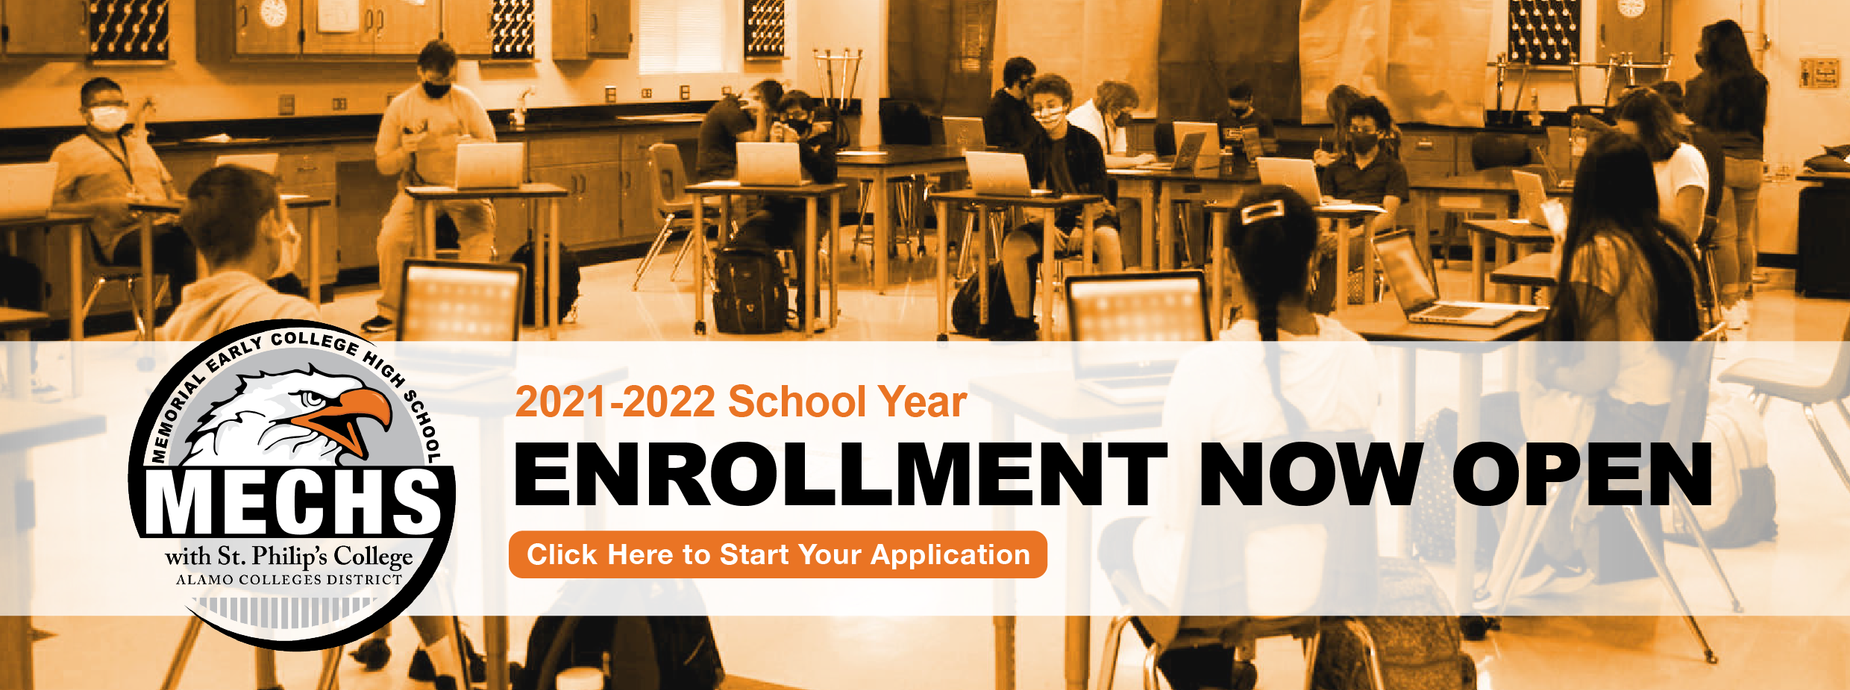 Click here to Apply for 2021-2022 School Year Enrollment